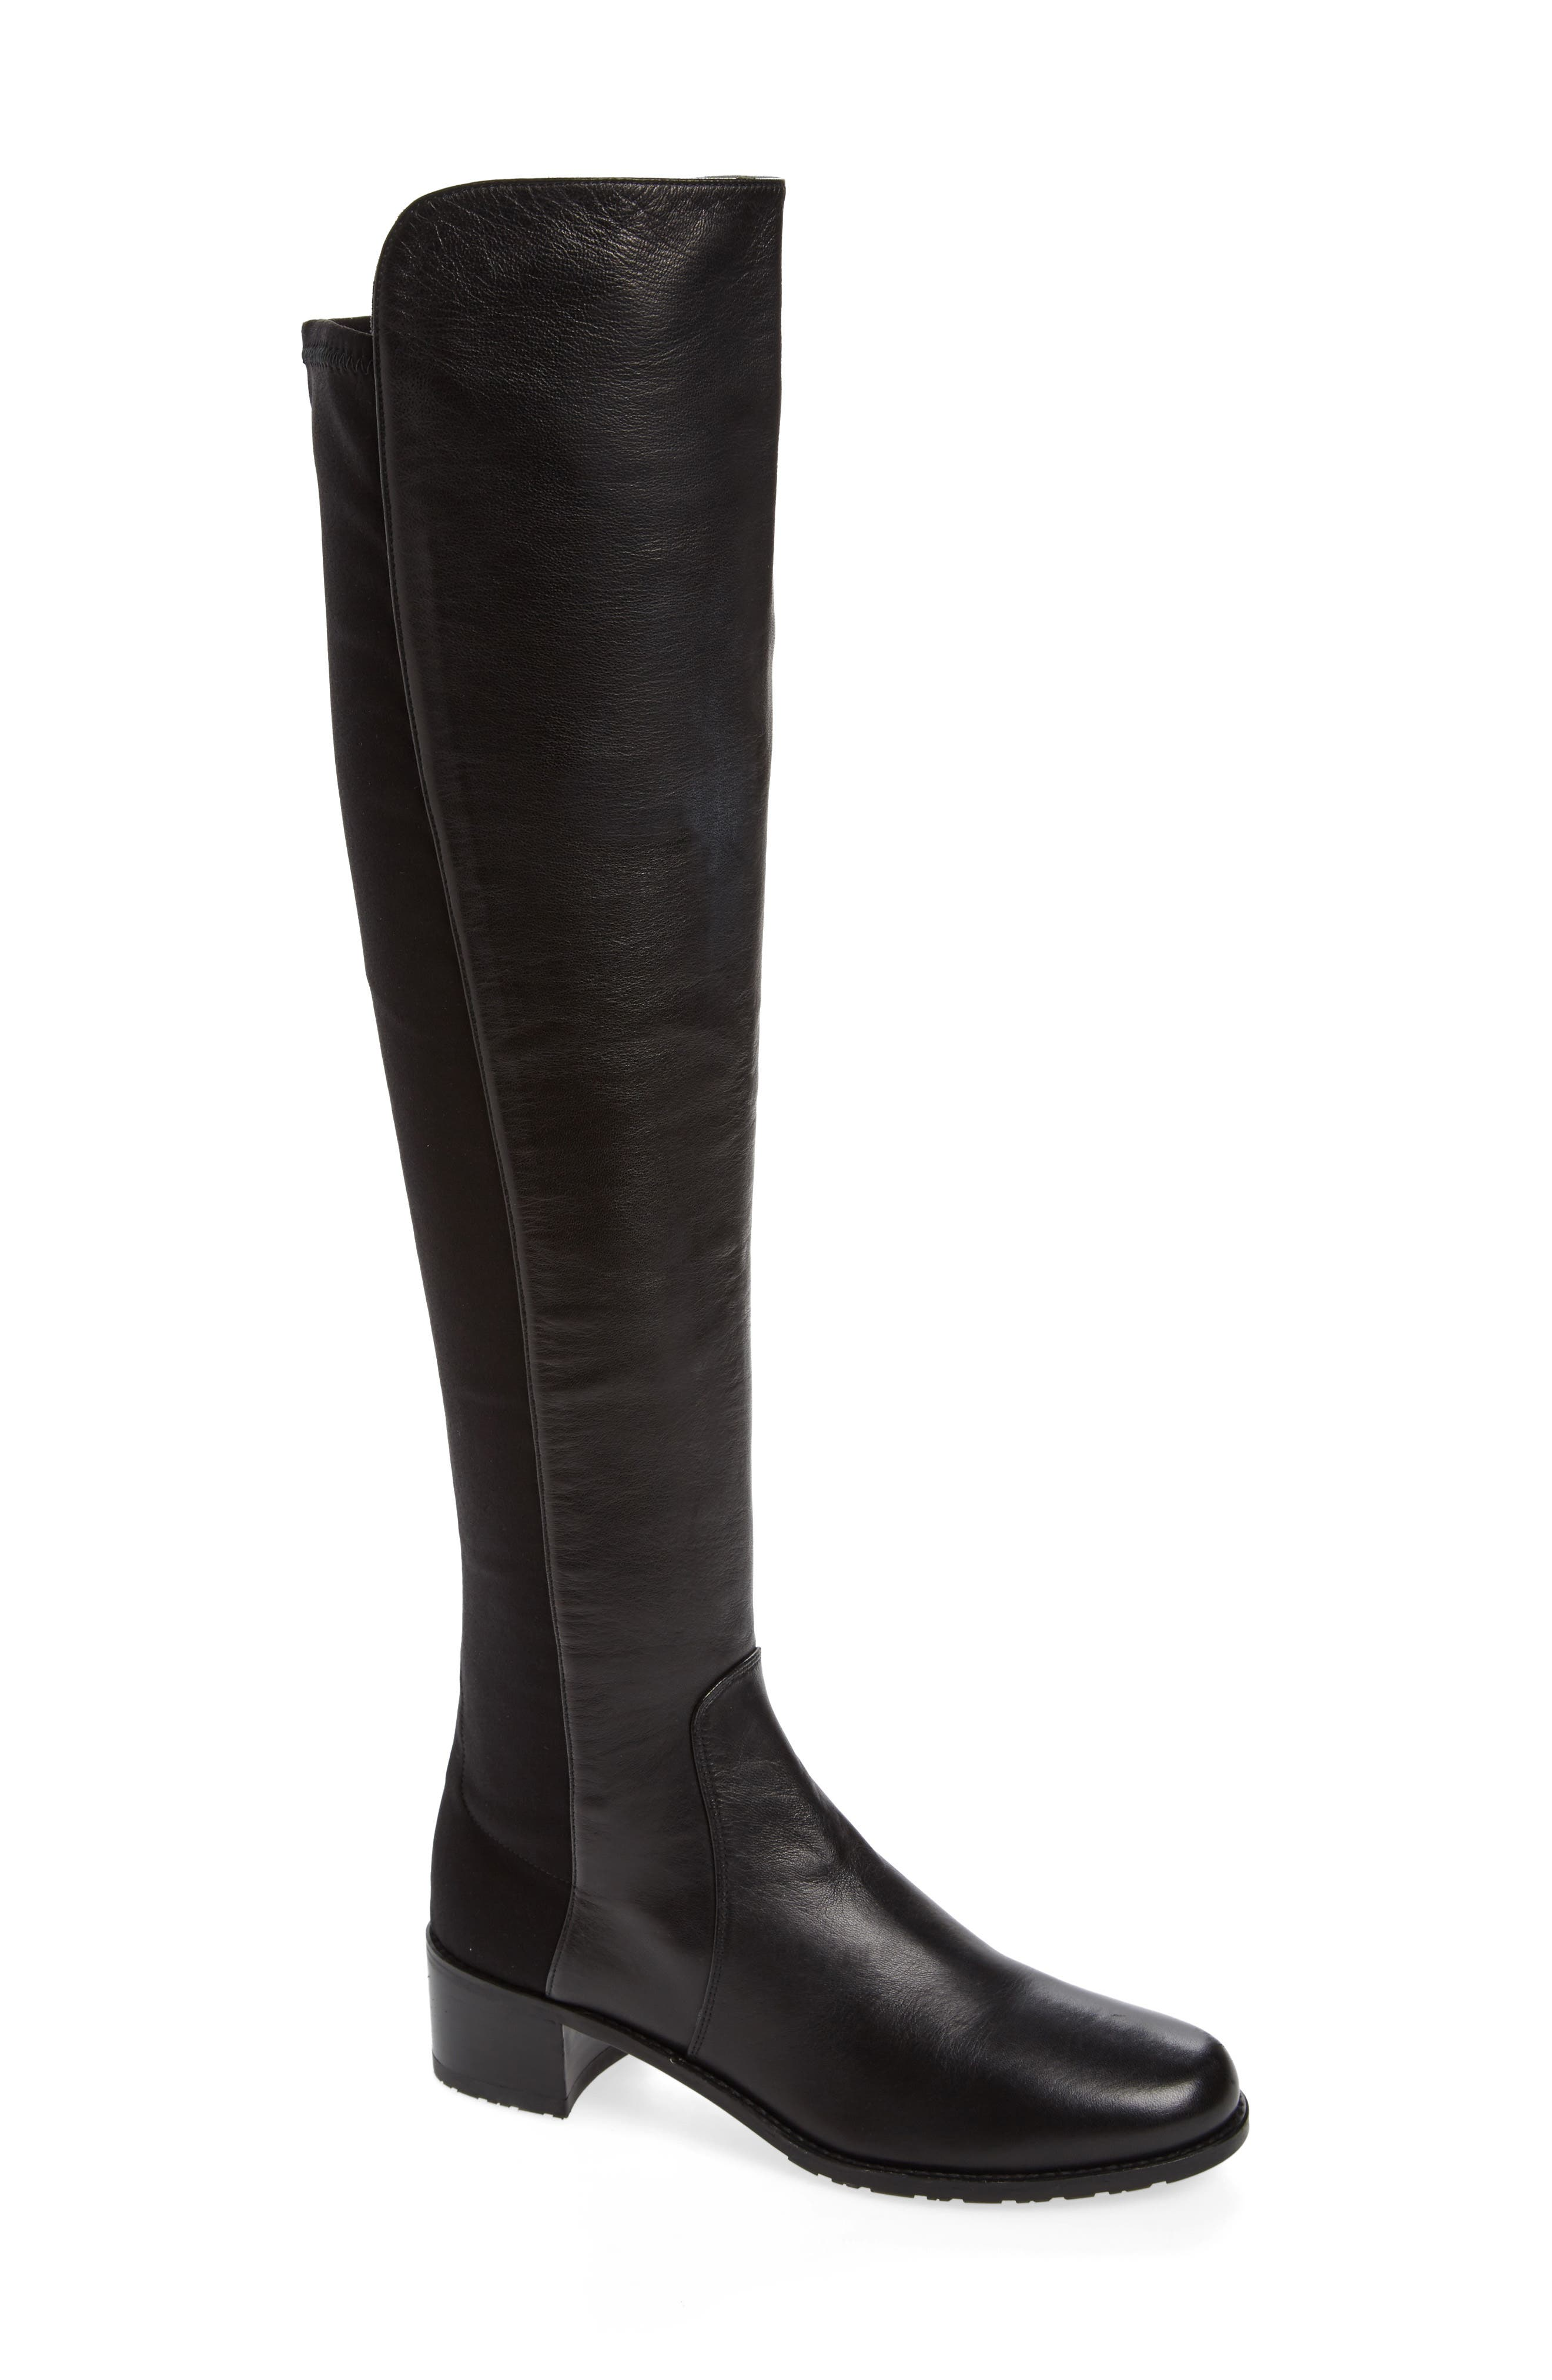 'Reserve' Over the Knee Boot,                             Main thumbnail 1, color,                             Black Nappa